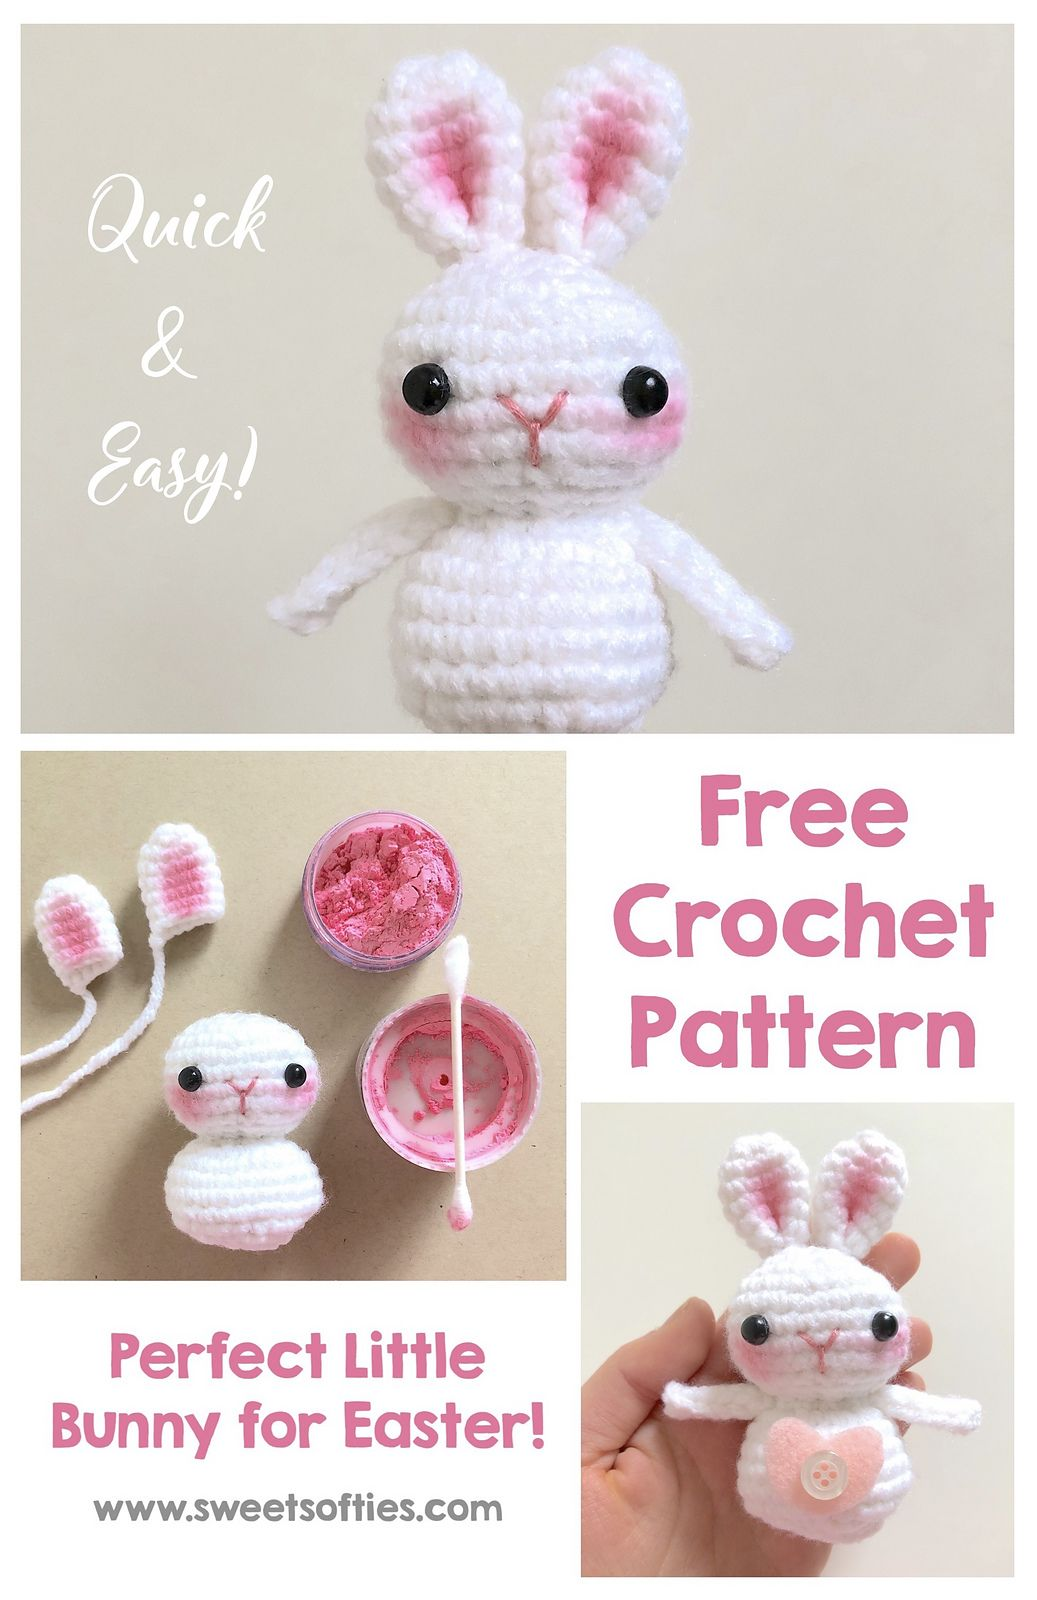 Some-Bunny To Love By Sweet Softies - Free Crochet Pattern ...